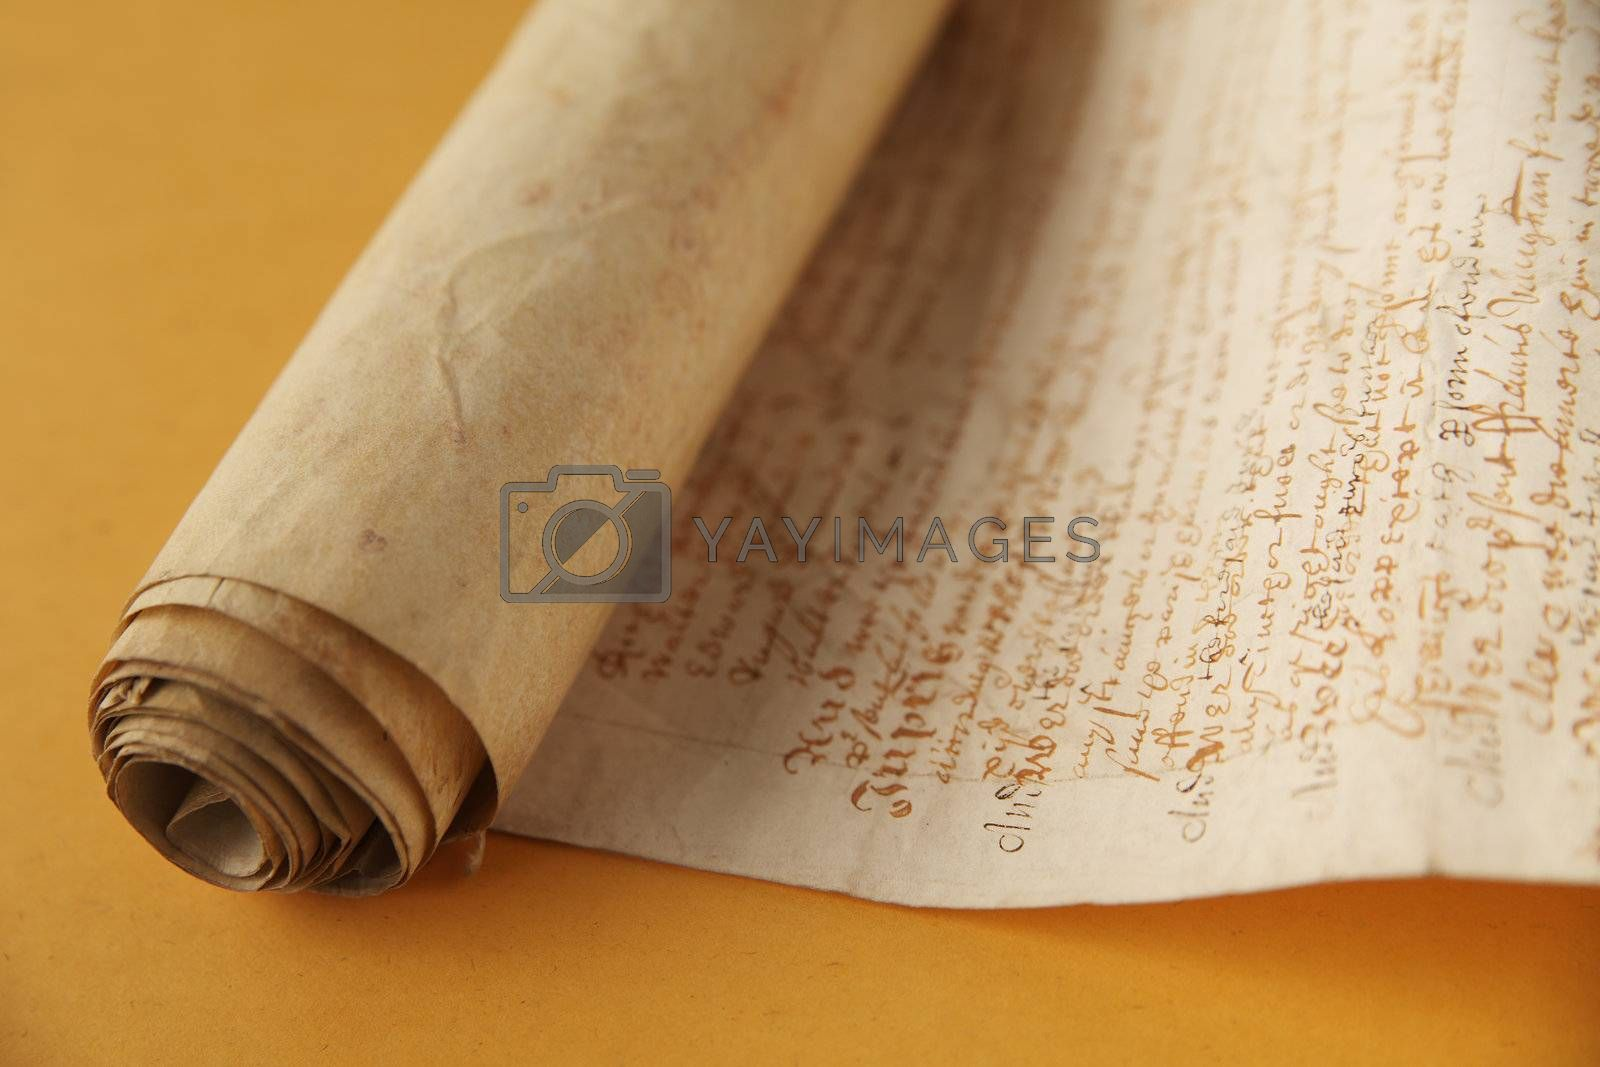 old document with old-fashioned script writing